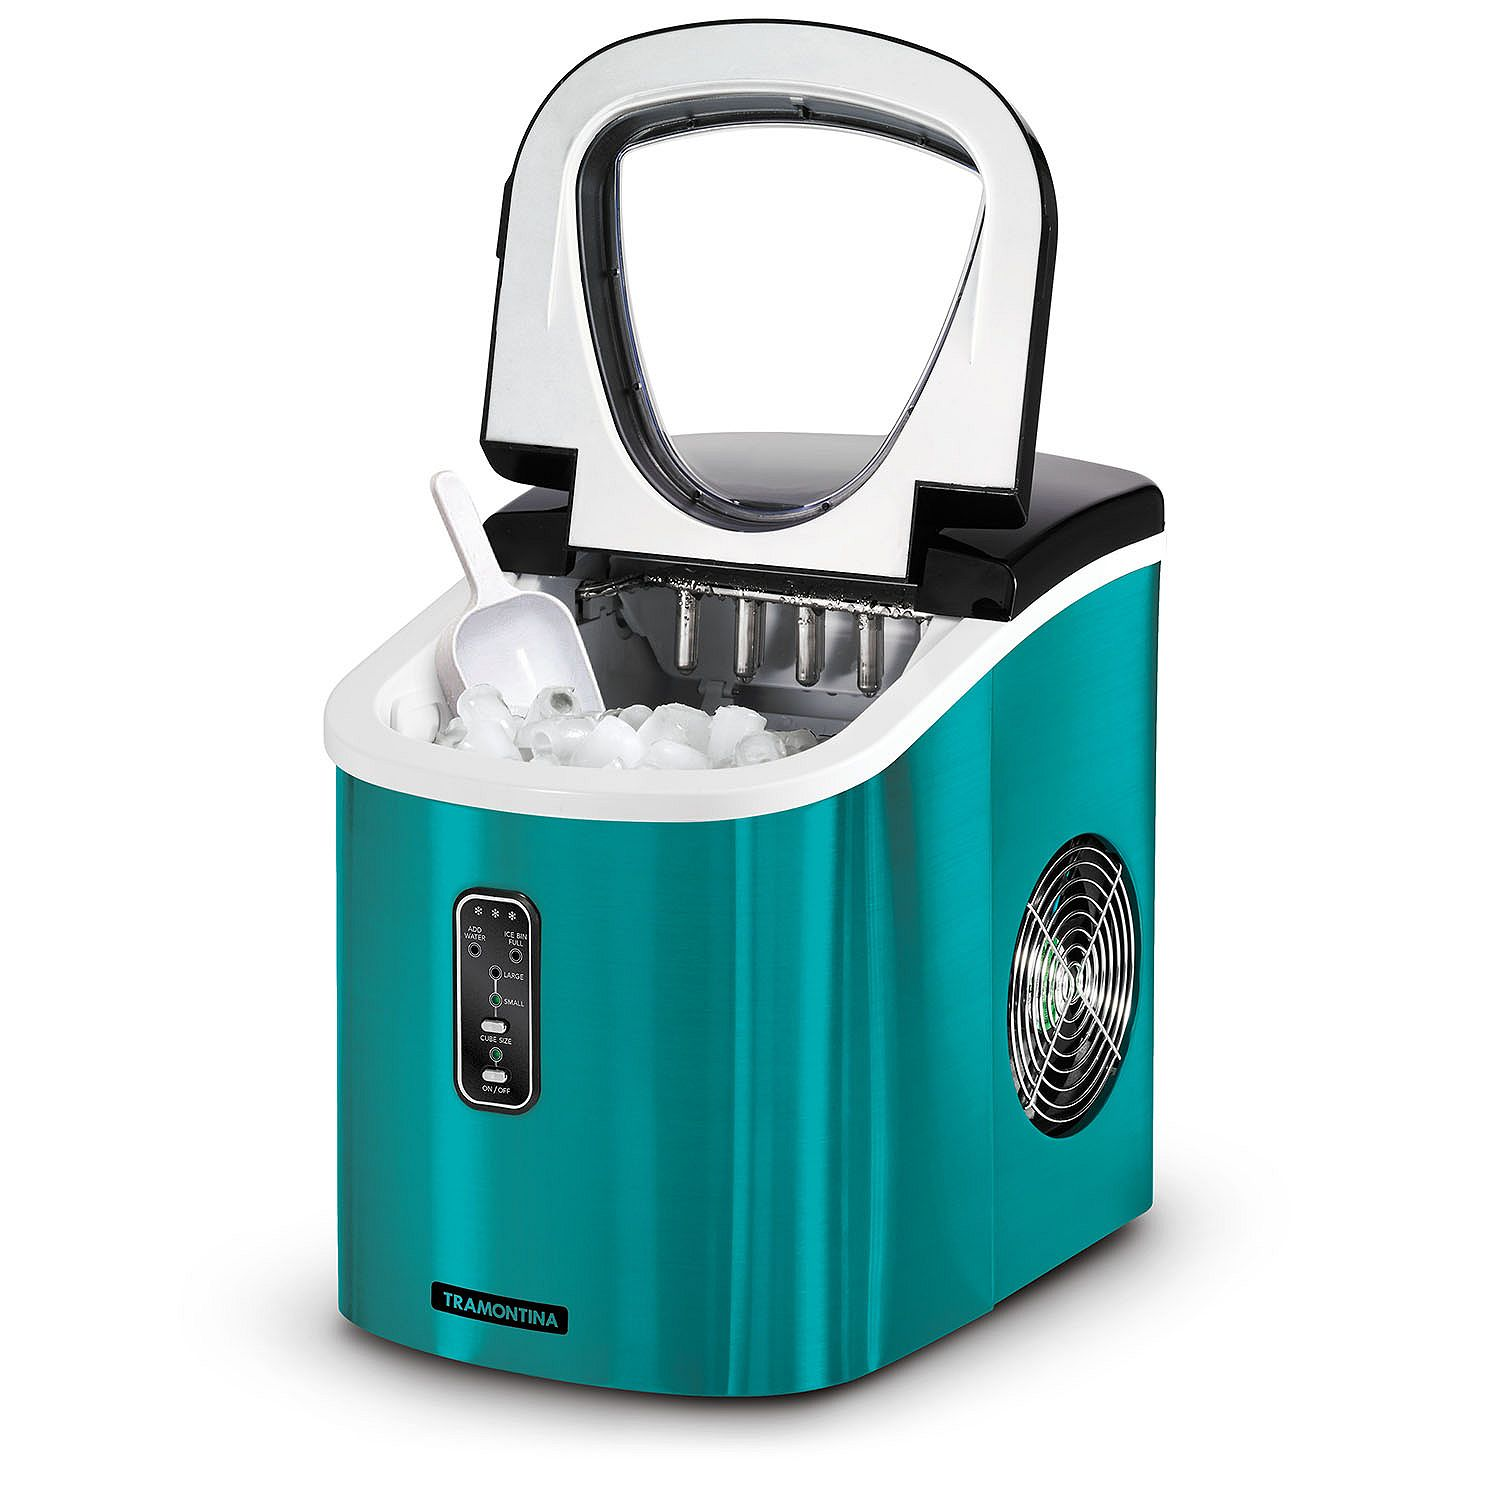 Tramontina Stainless Steel Ice Maker, Teal